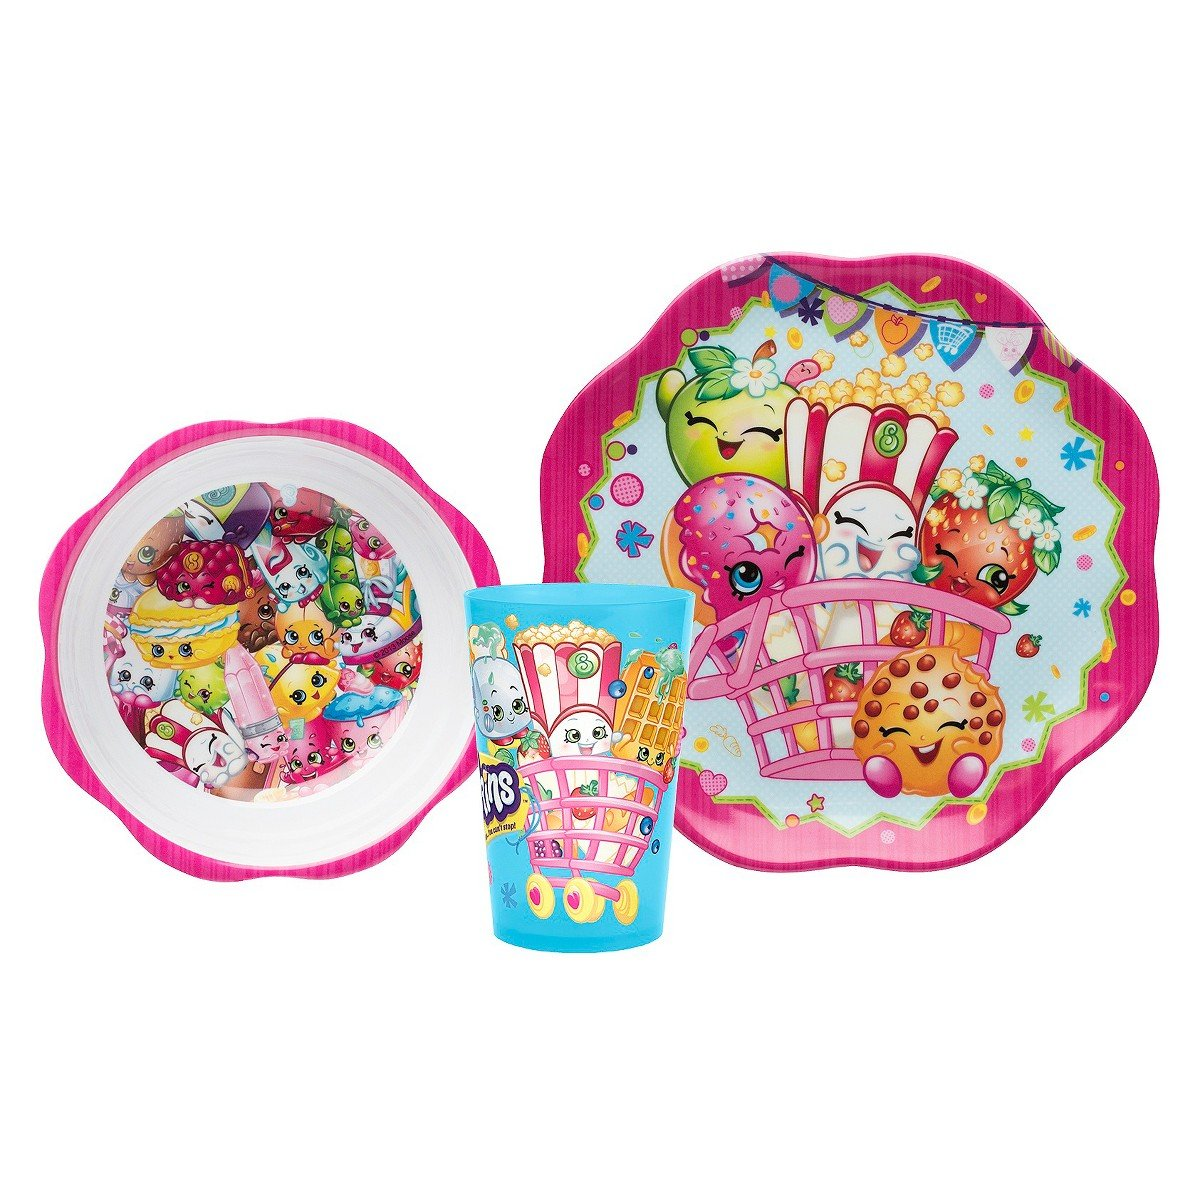 Shopkins Mealtime Set   B01E866474